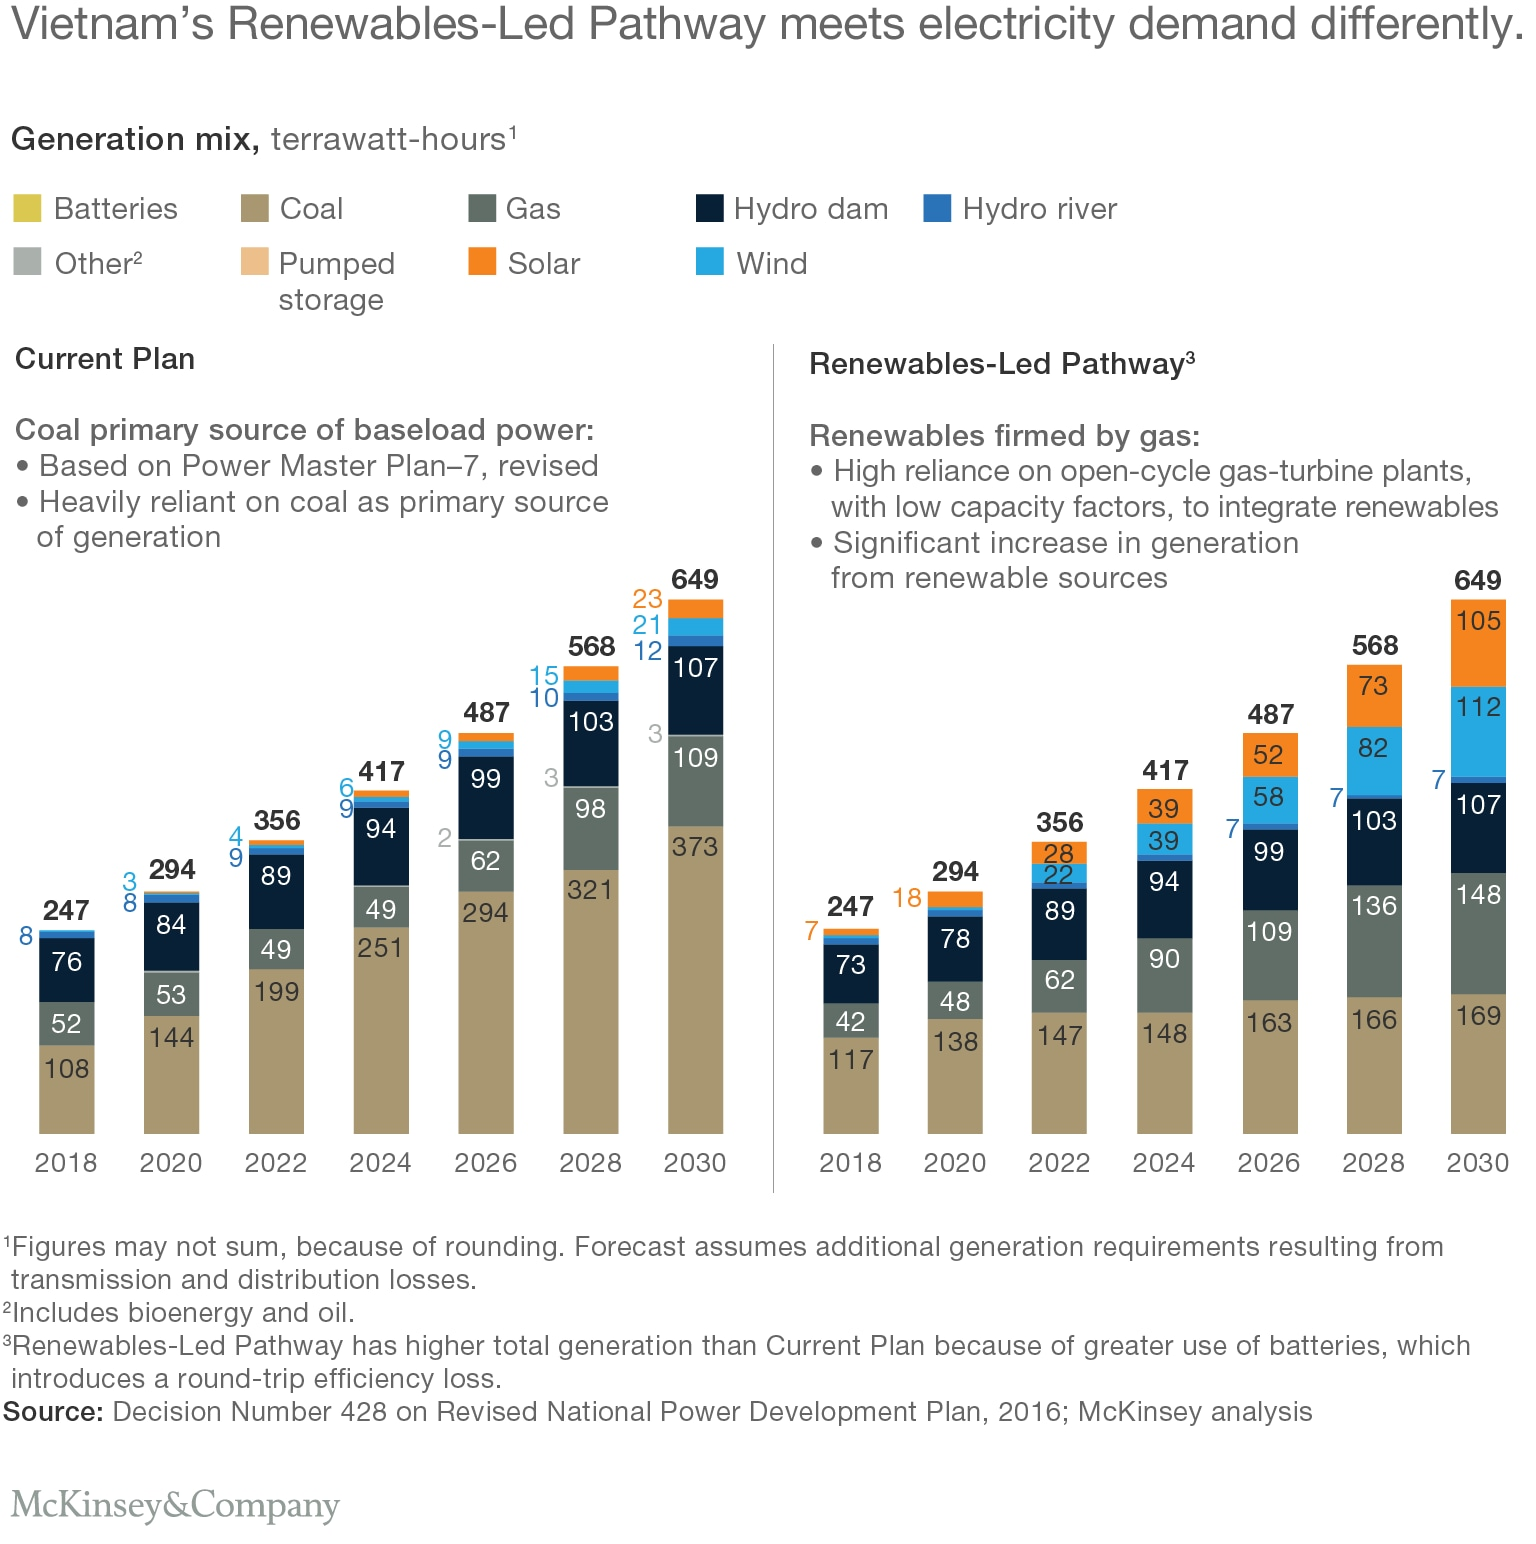 Vietnam's Renewables-Led Pathway meets electricity demand differently.